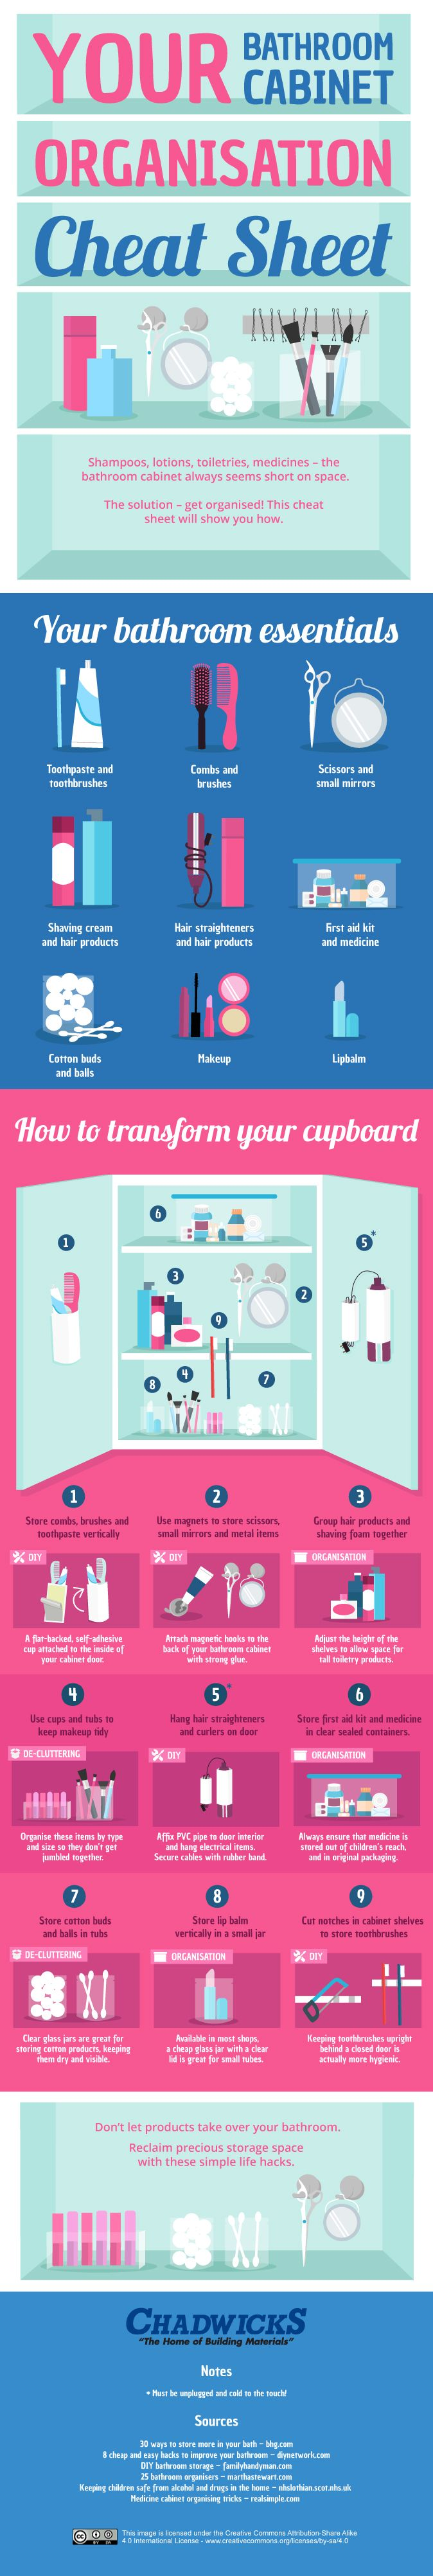 Tip: Adjust the height of the shelves in your bathroom cabinet to allow space for tall toiletries.